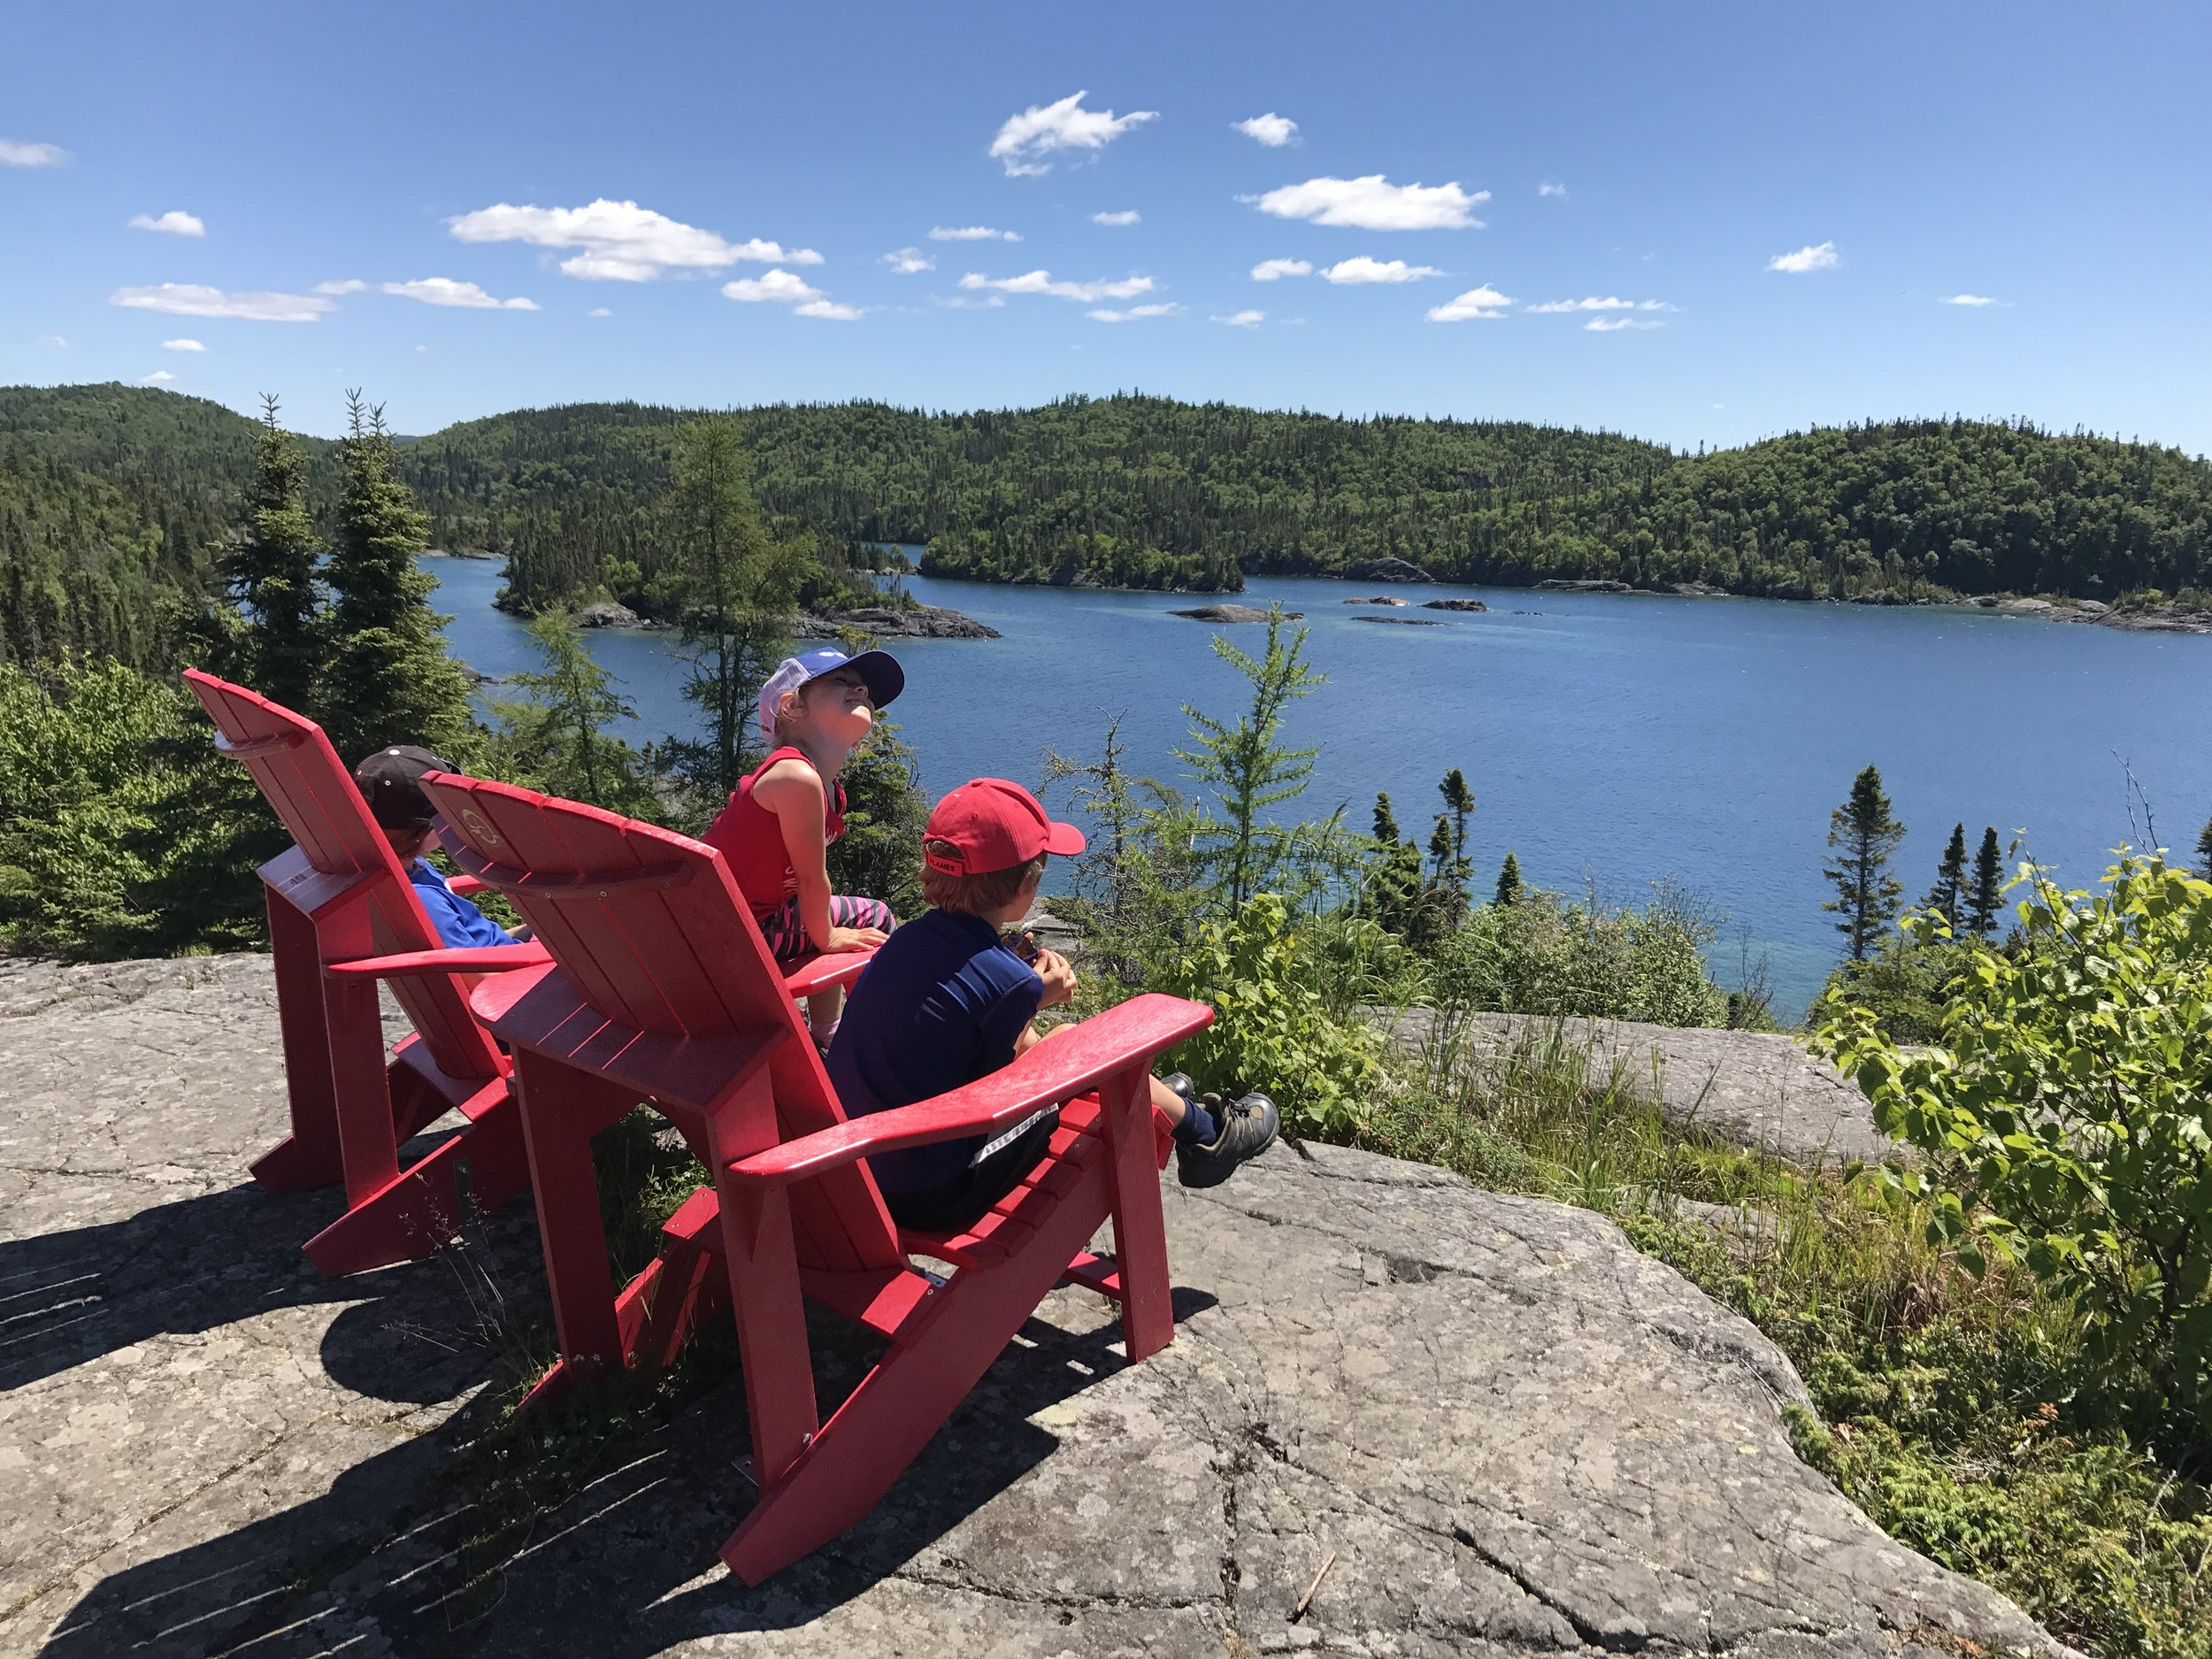 Pukaskwa's chairs offered breathtaking views straight out of a Group of Seven painting. Well worth the hike! Now to rest and take a load off.